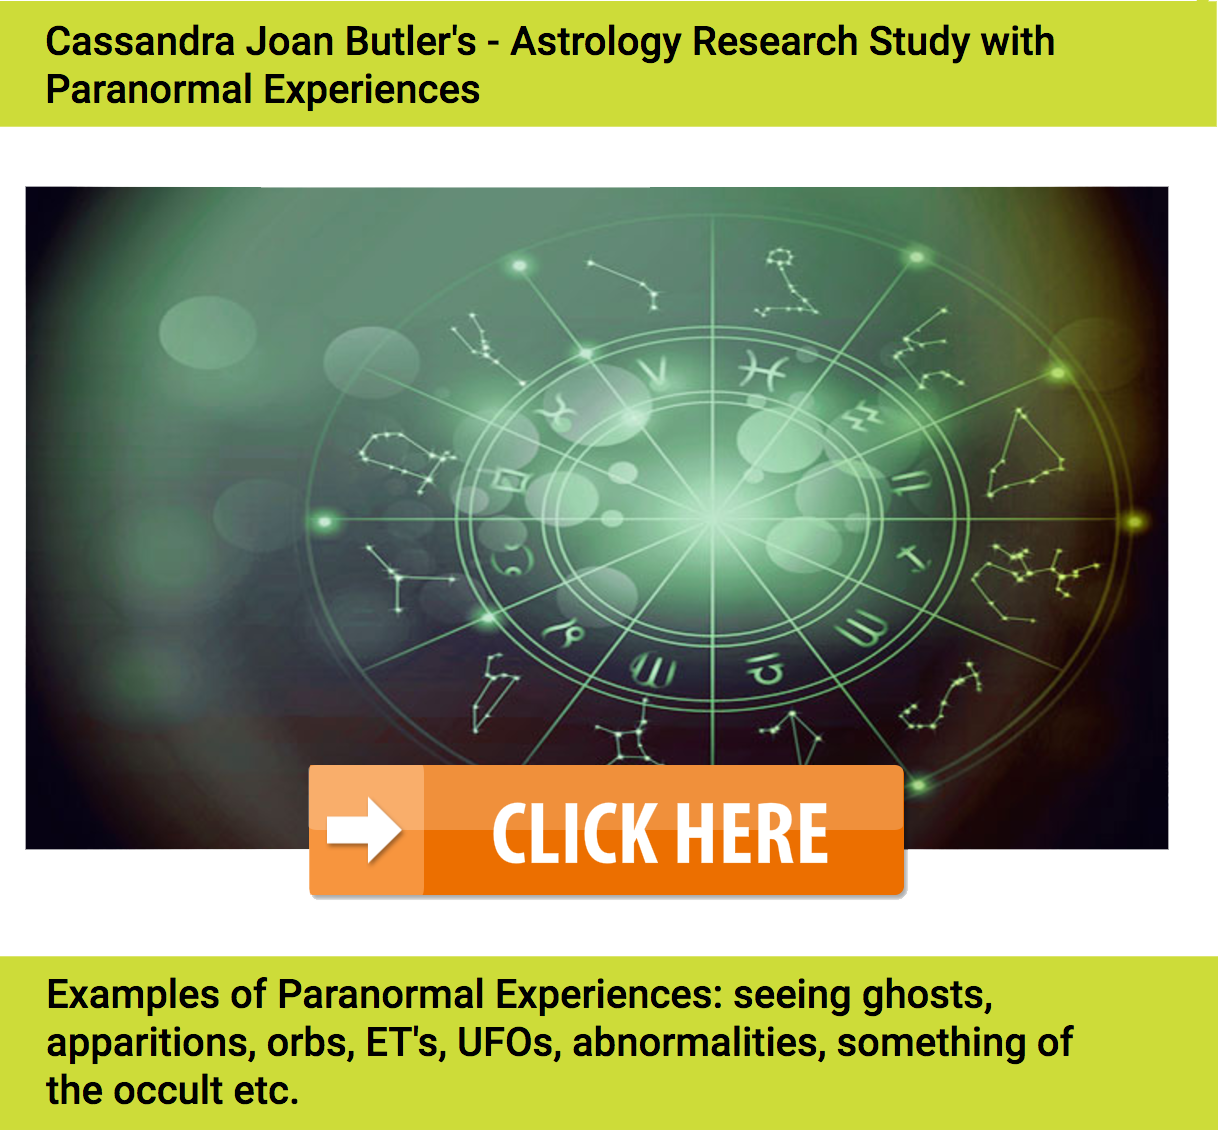 Astrology Research Dates of Paranormal Encounters by Cassandra Joan Butler